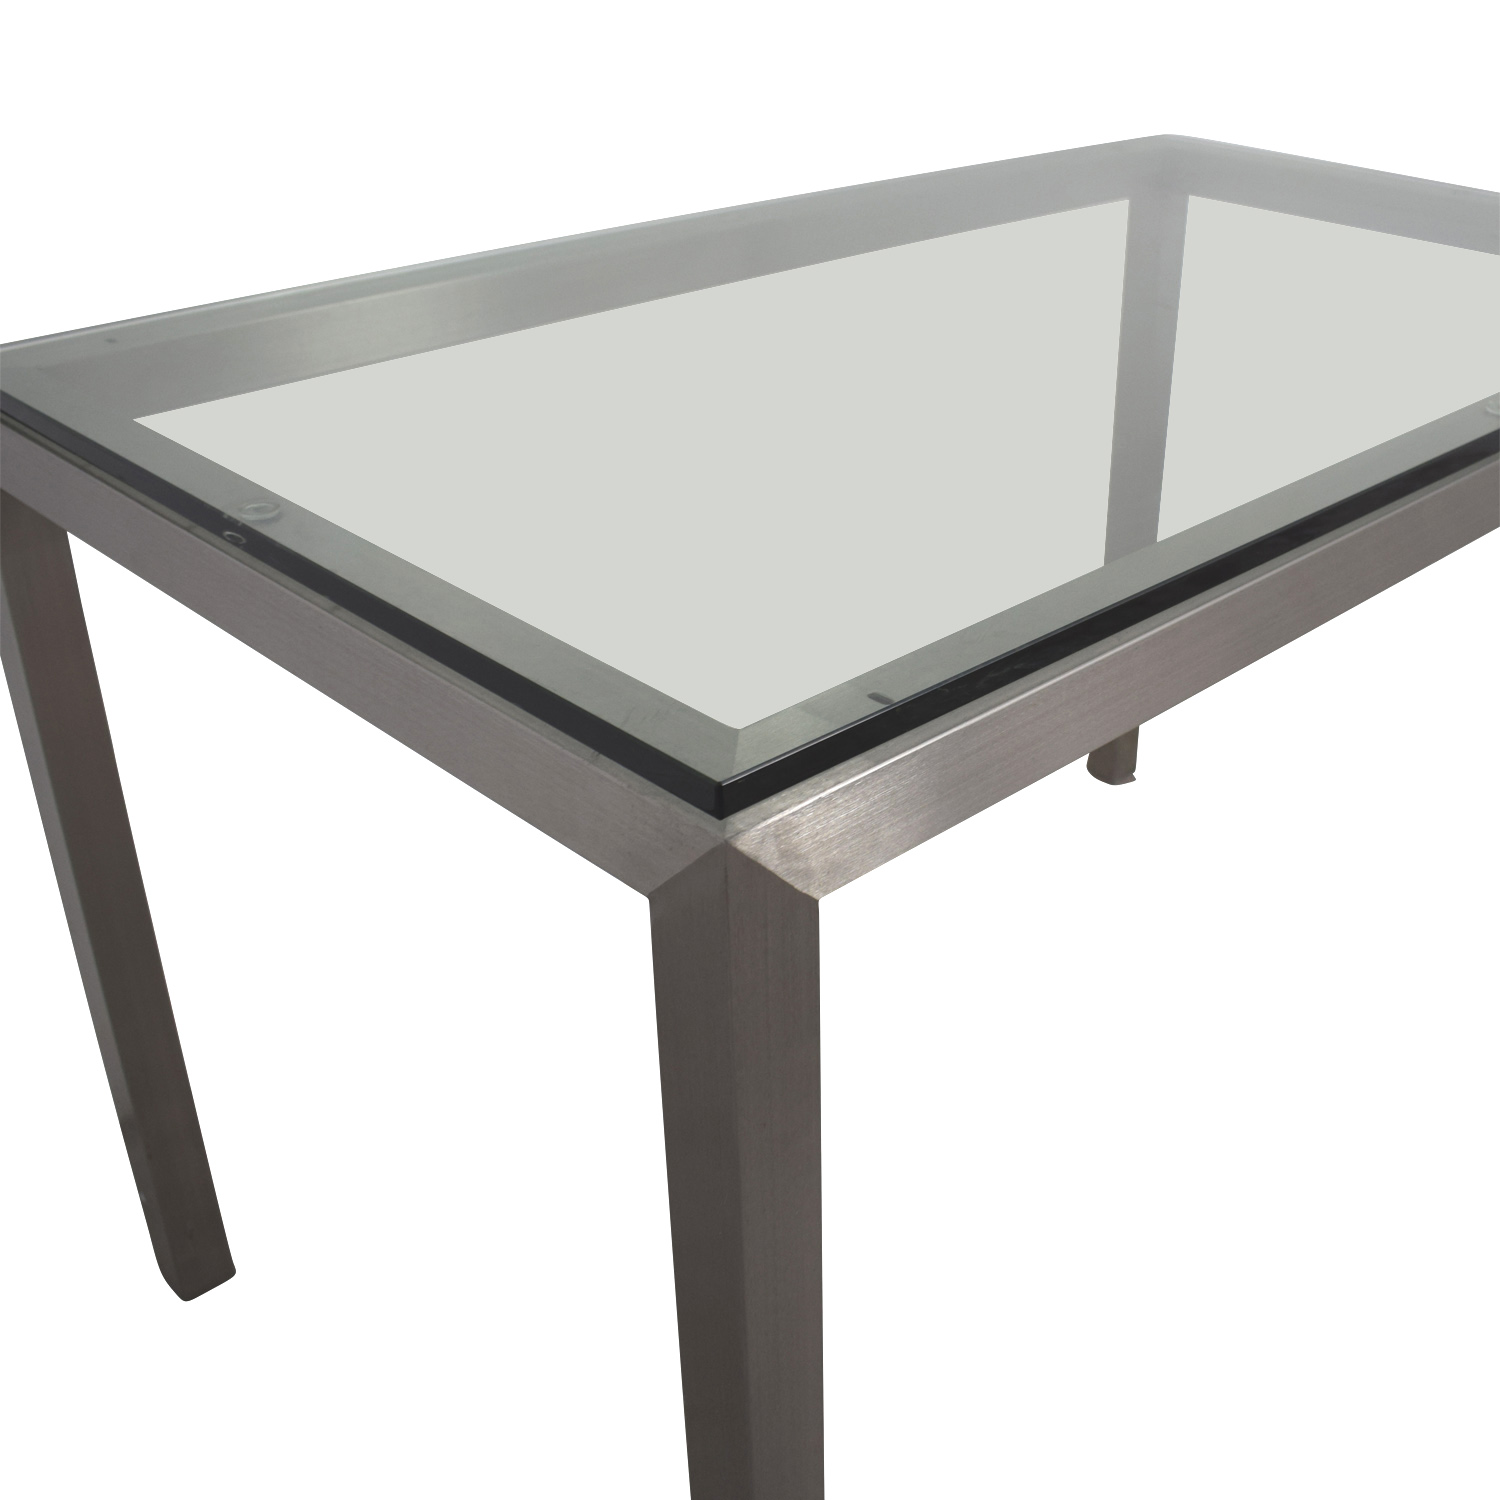 Crate & Barrel Glass and Stainless Steel Dining Table Crate & Barrel